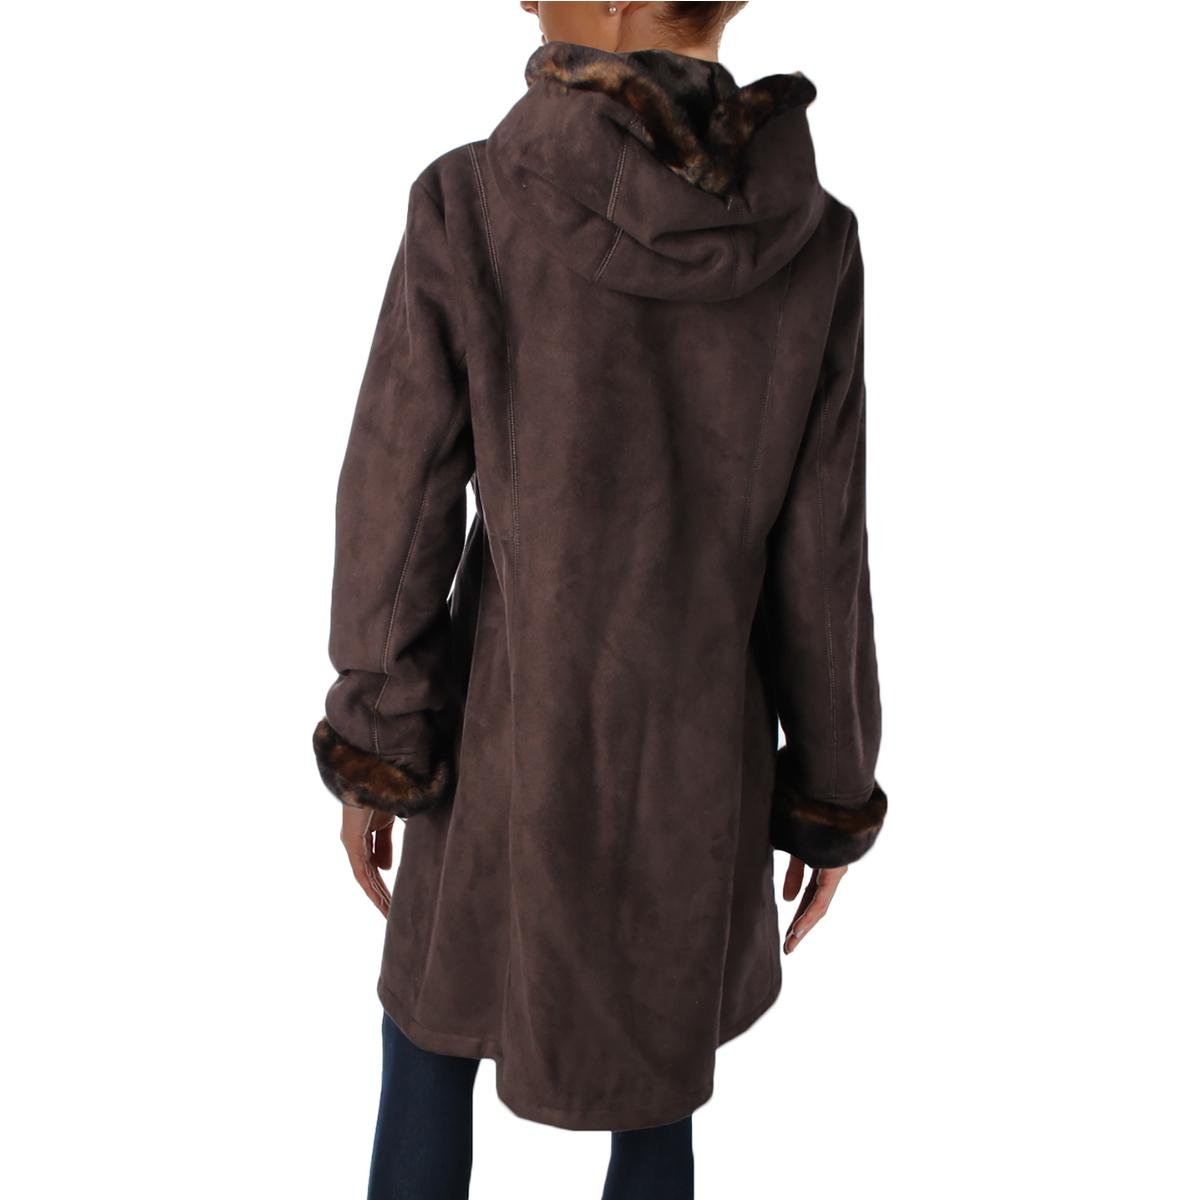 Gallery Womens Petites Faux Suede Faux Fur Lined Pea Coat Brown PL by Gallery (Image #2)